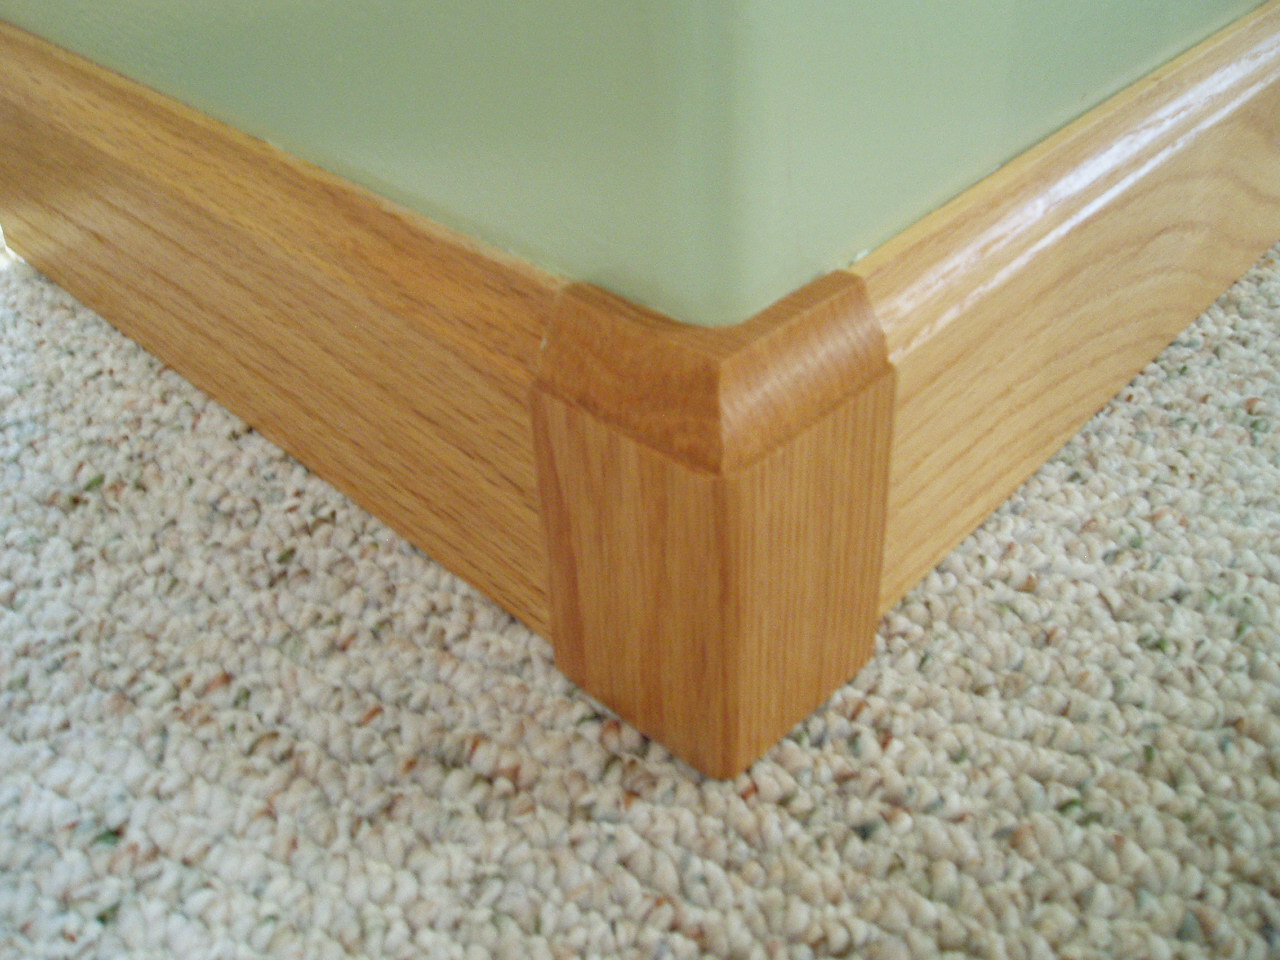 Baseboard Moulding On Rounded Corners Round Designs